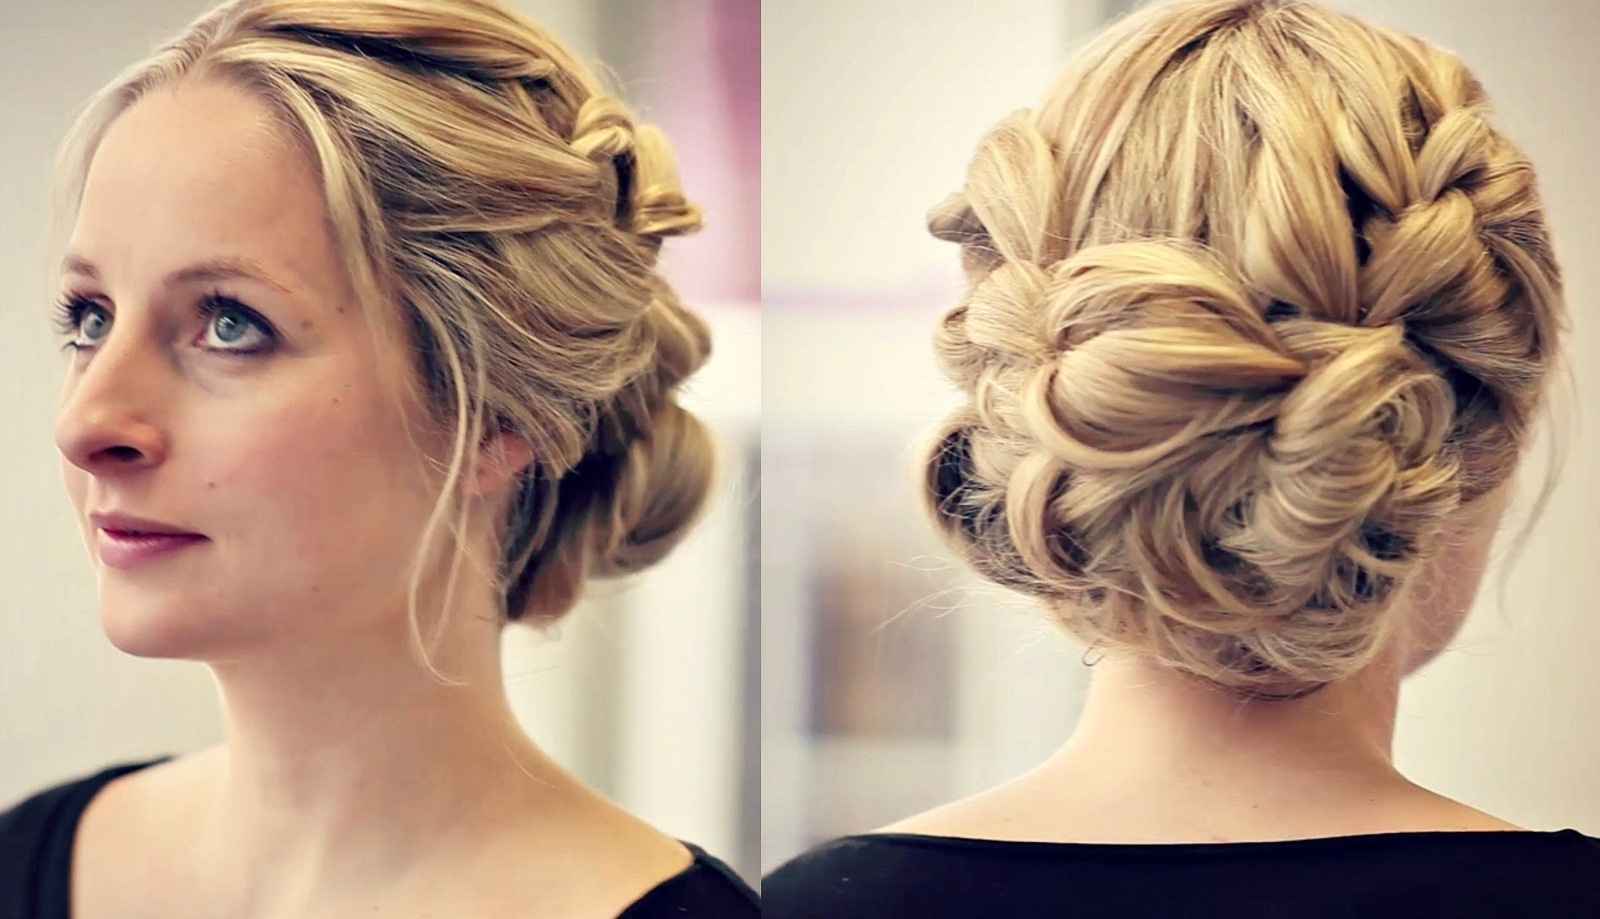 Bridal Hairstyles For Short Hair Updos | Trend Hairstyle And Haircut Pertaining To Mother Of The Bride Half Updo Hairstyles (View 3 of 15)